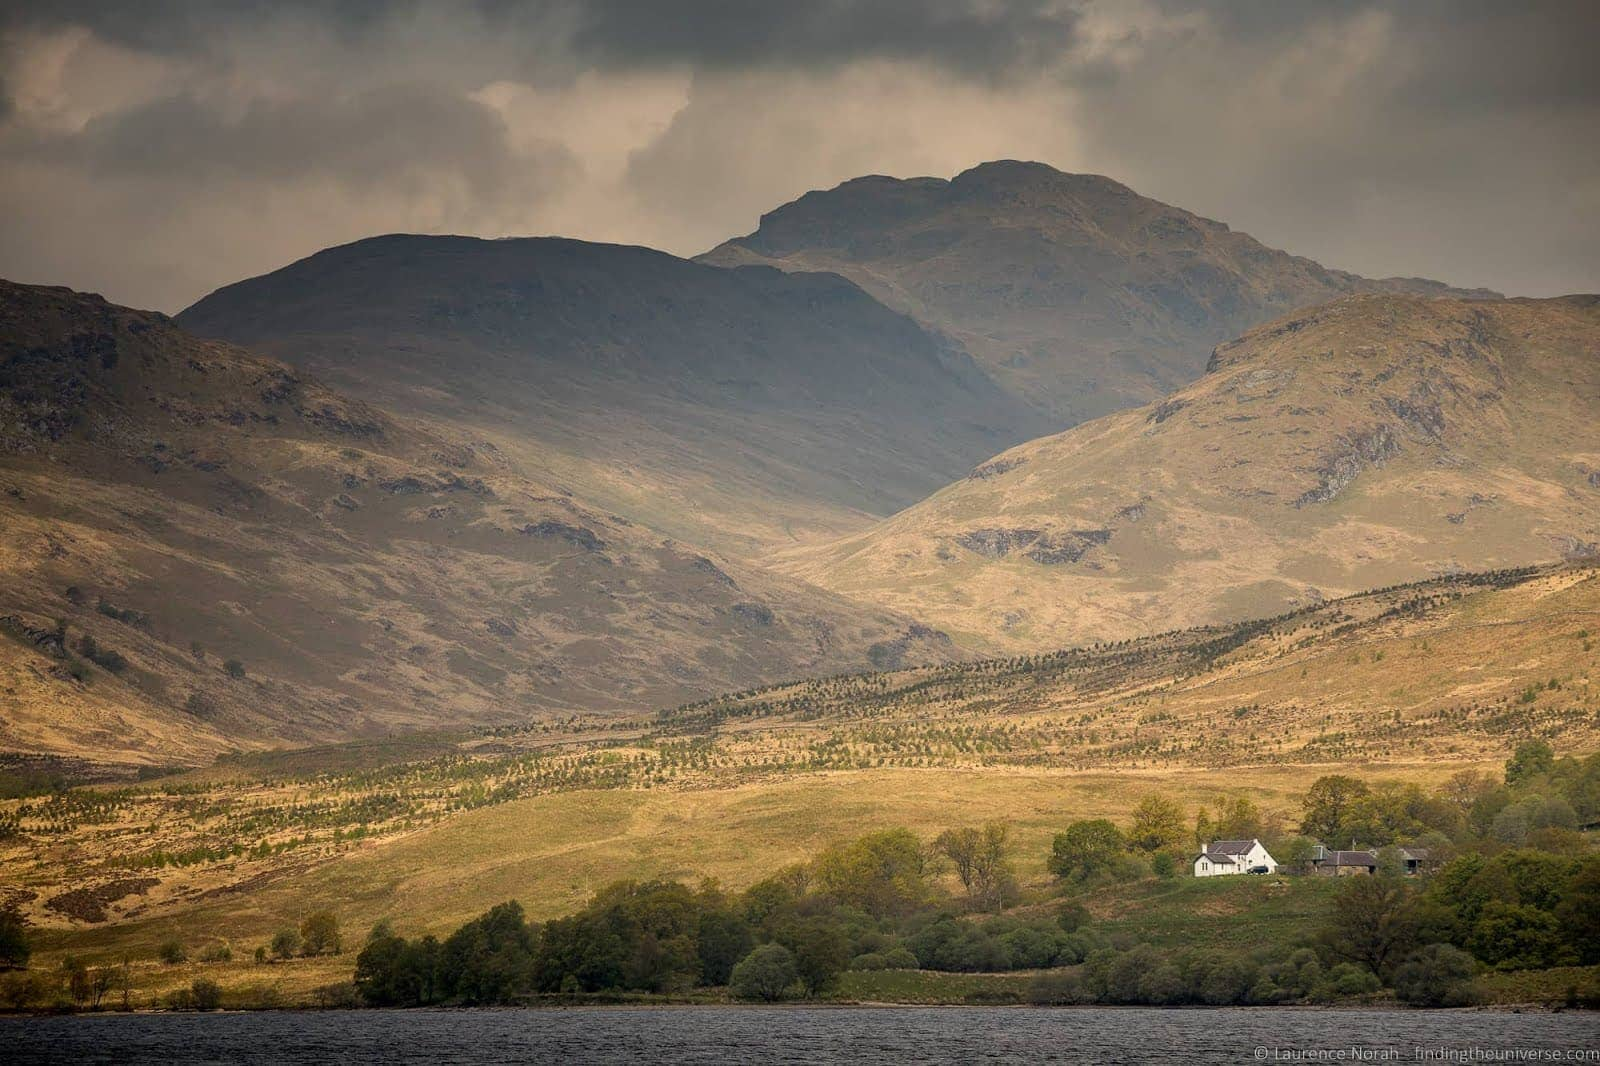 2 Days In Glasgow and Loch Lomond - An Itinerary - Finding the Universe